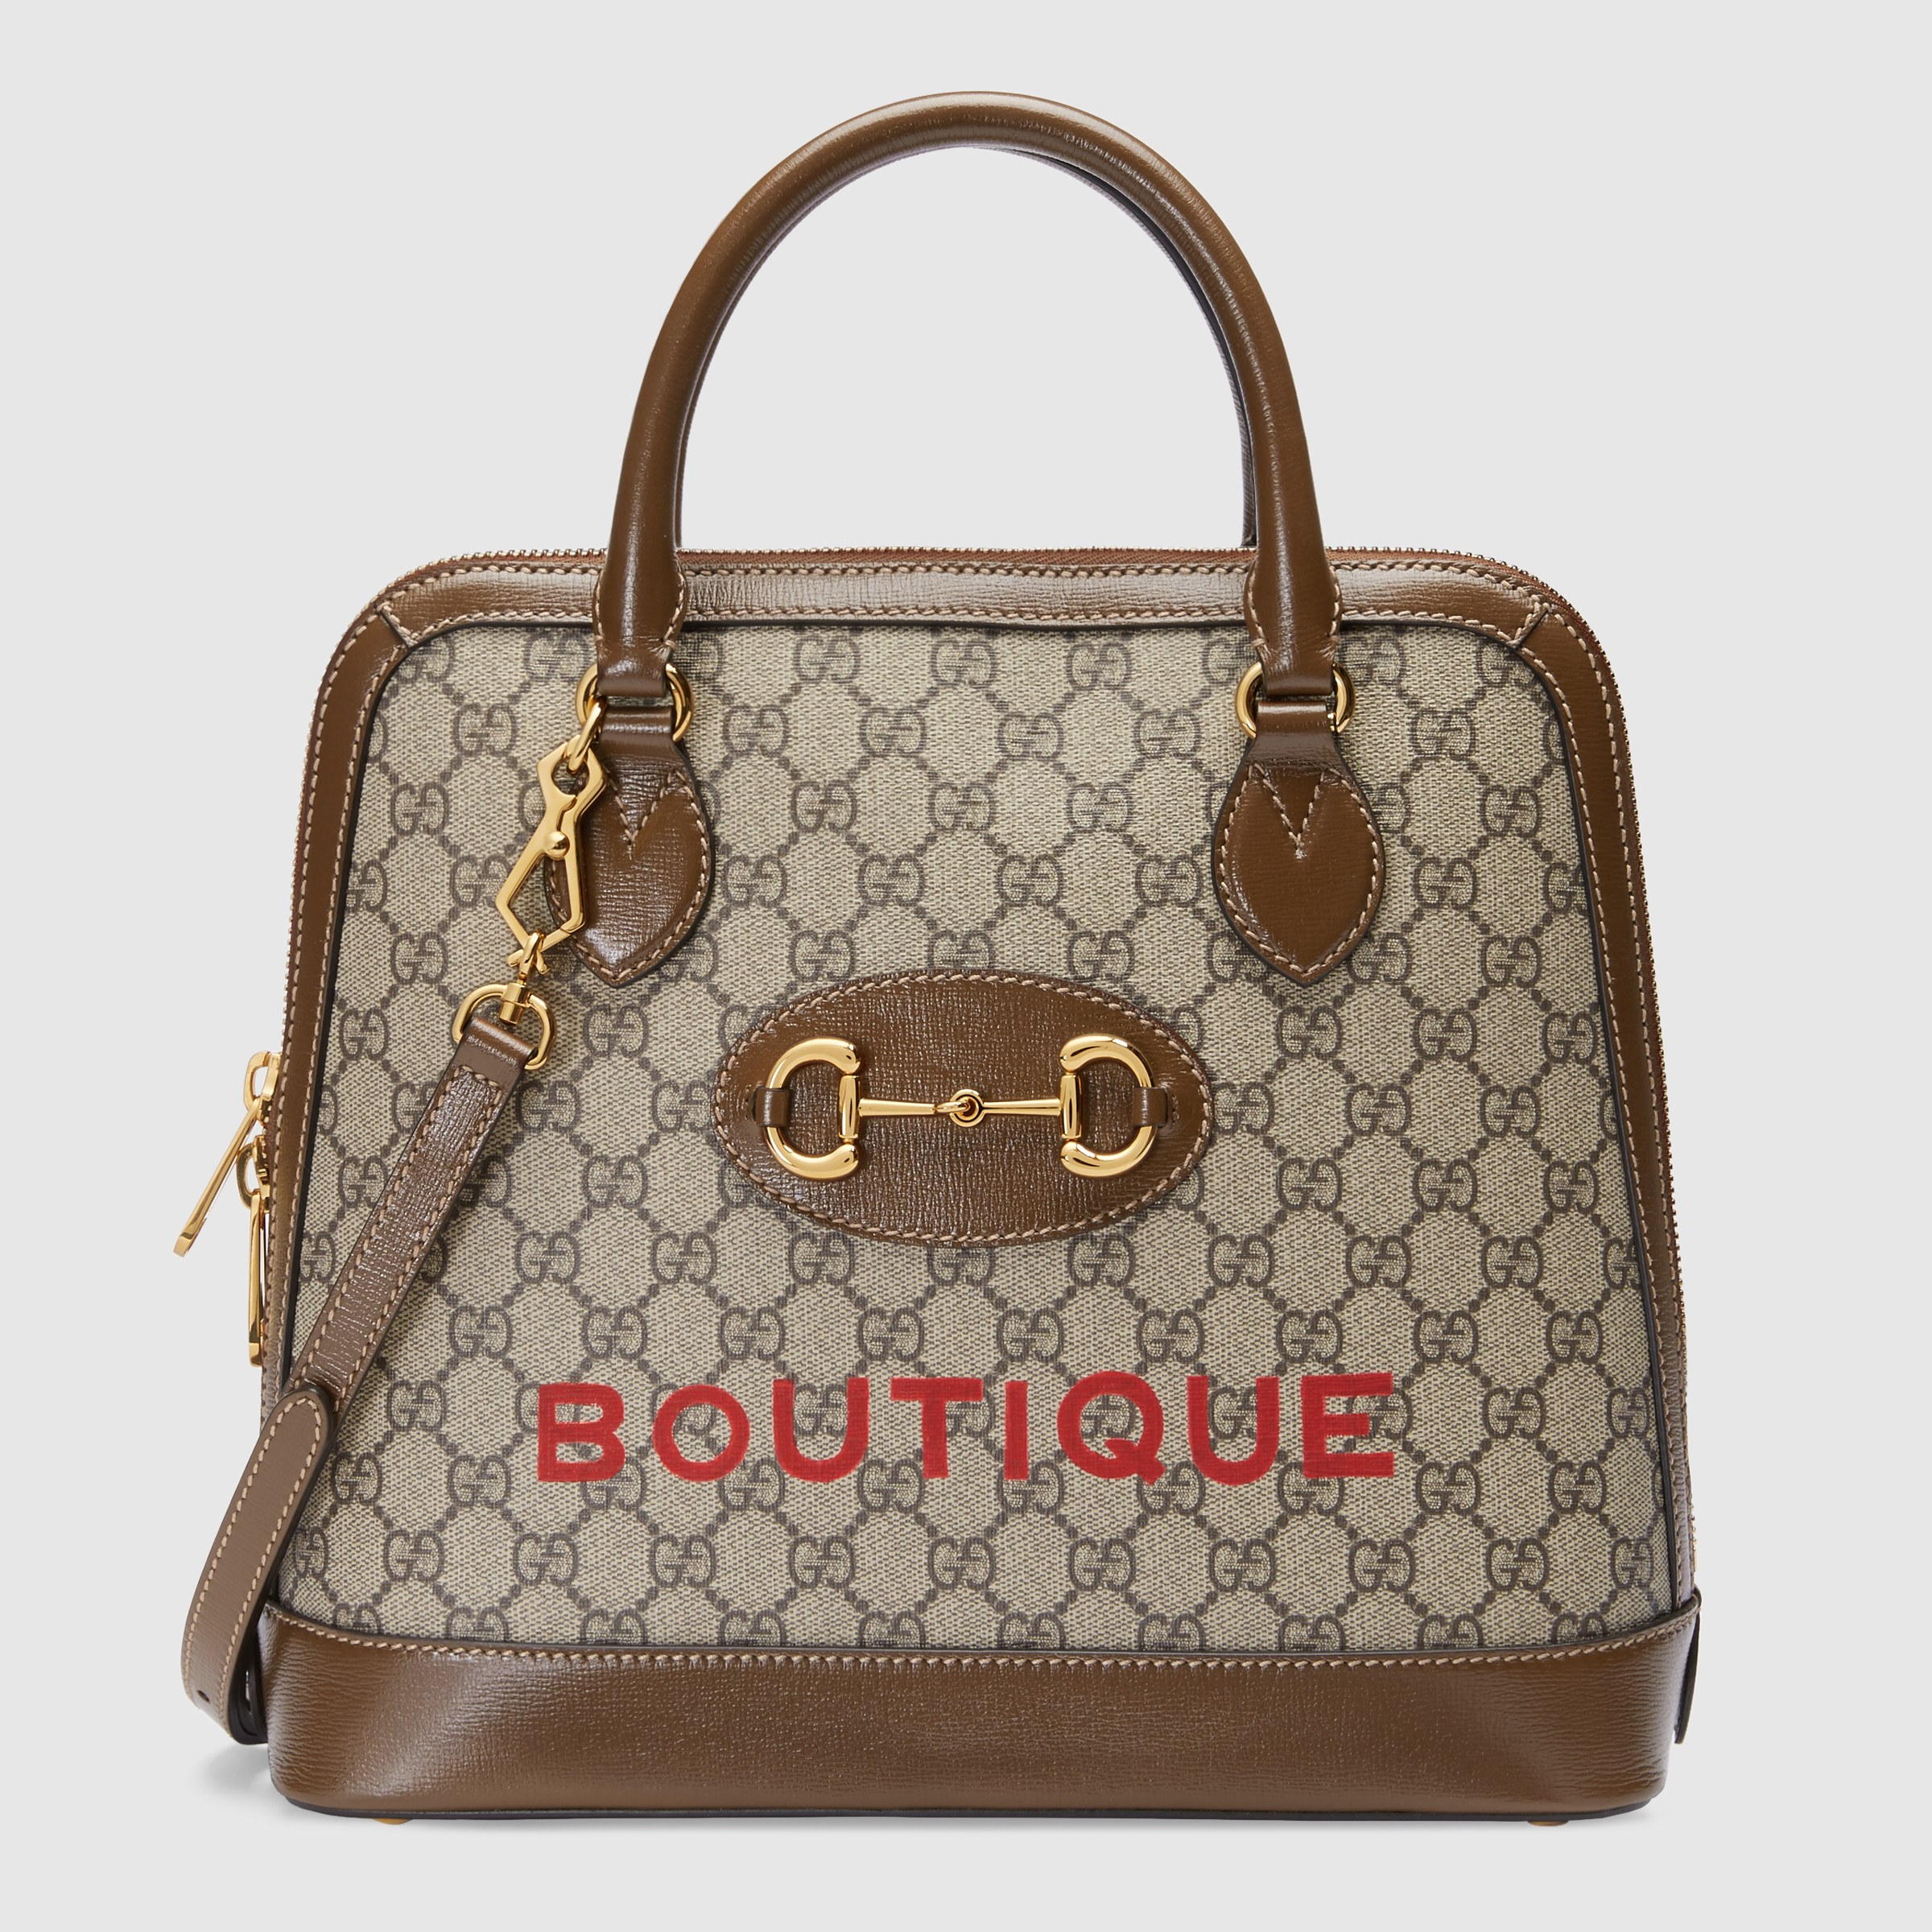 Gucci Horsebit 1955 Medium Top Handle Bag 620850 Brown Leather